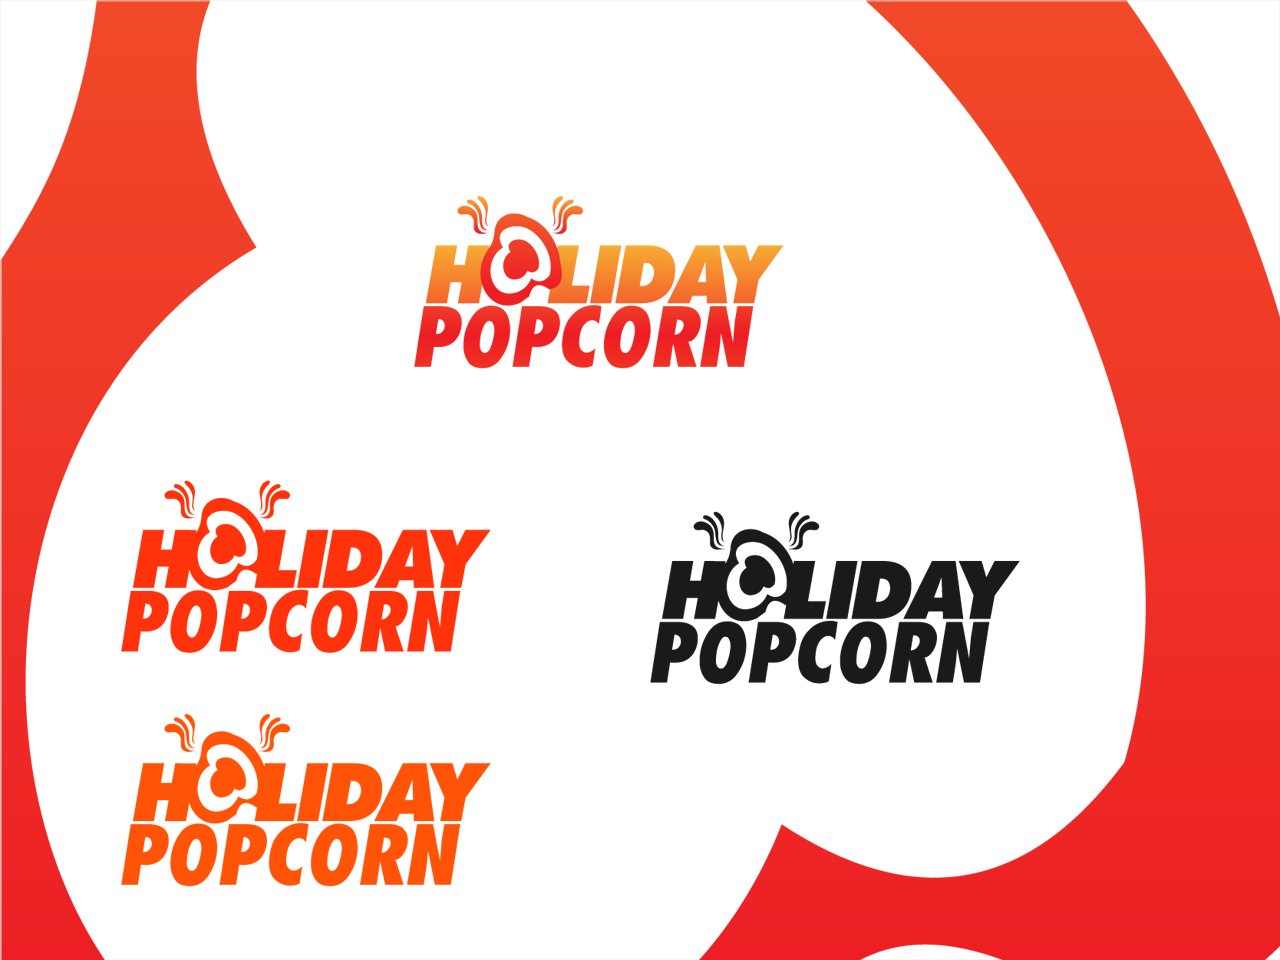 Logo Design by Mithra  Ravindran - Entry No. 8 in the Logo Design Contest Holiday Popcorn.